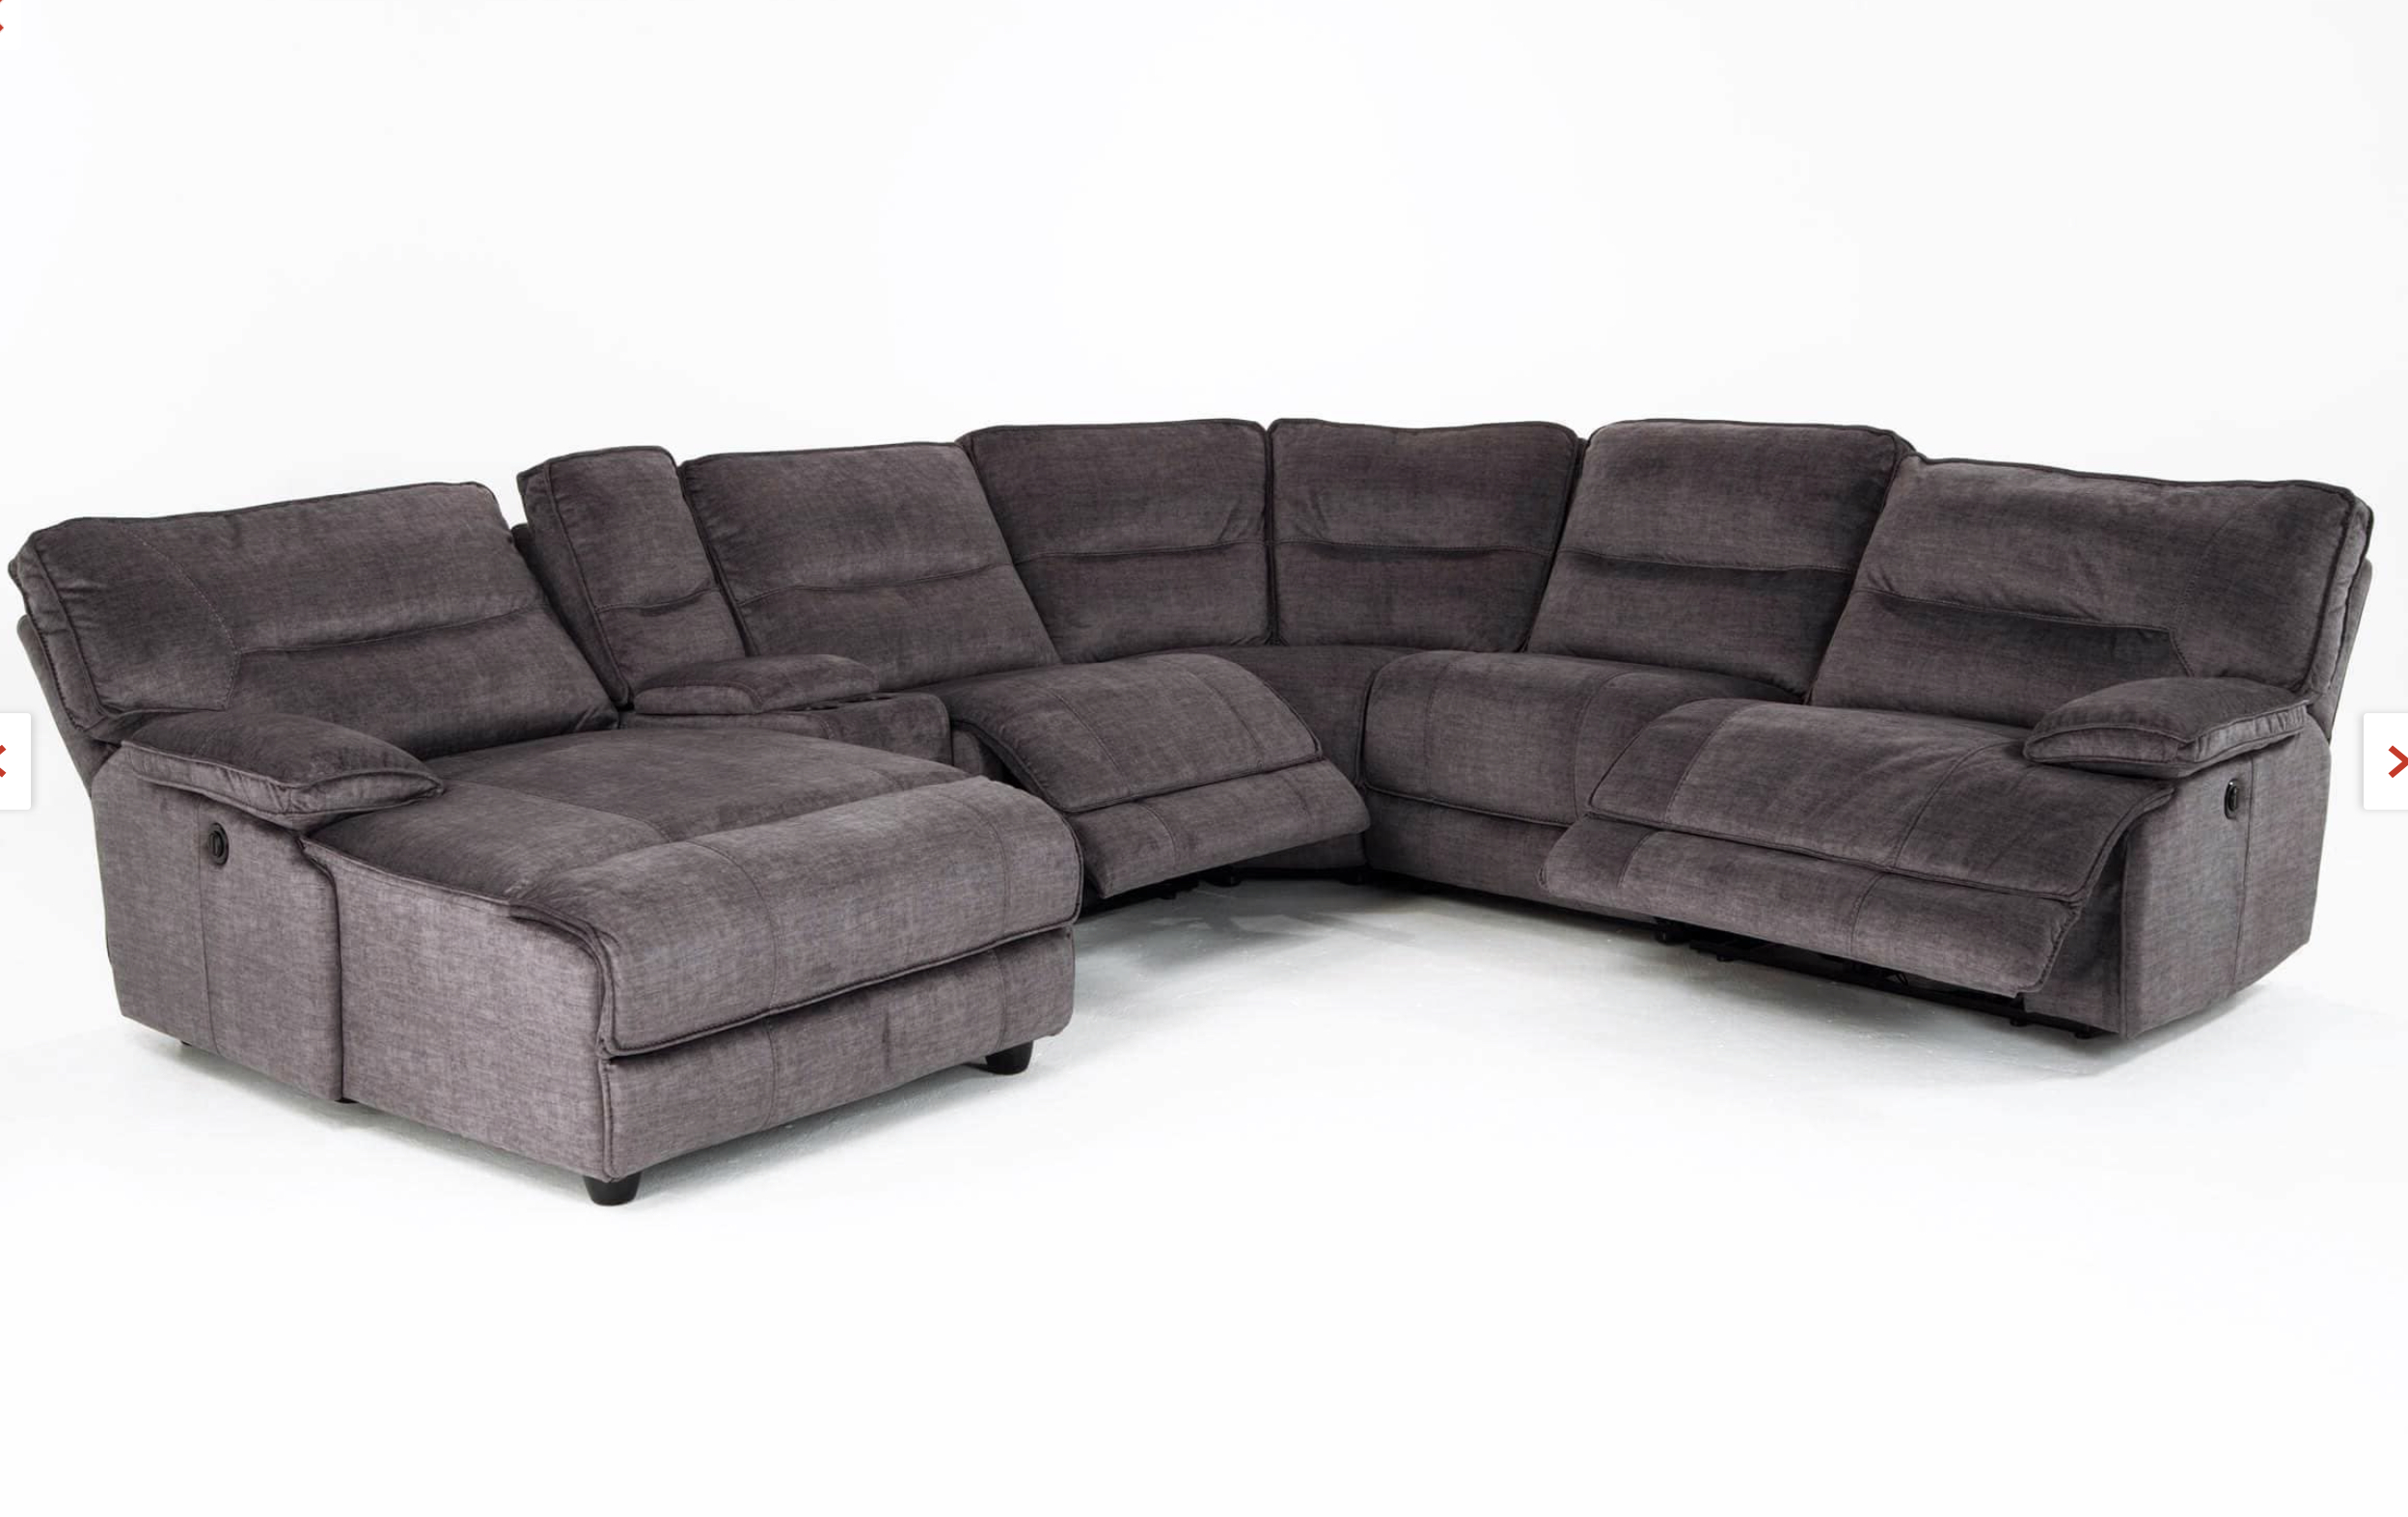 Pacifica Gray 6 Piece Power Reclining Left Arm Facing Pertaining To Recent Pacifica Gray Power Reclining Sofas (View 5 of 15)